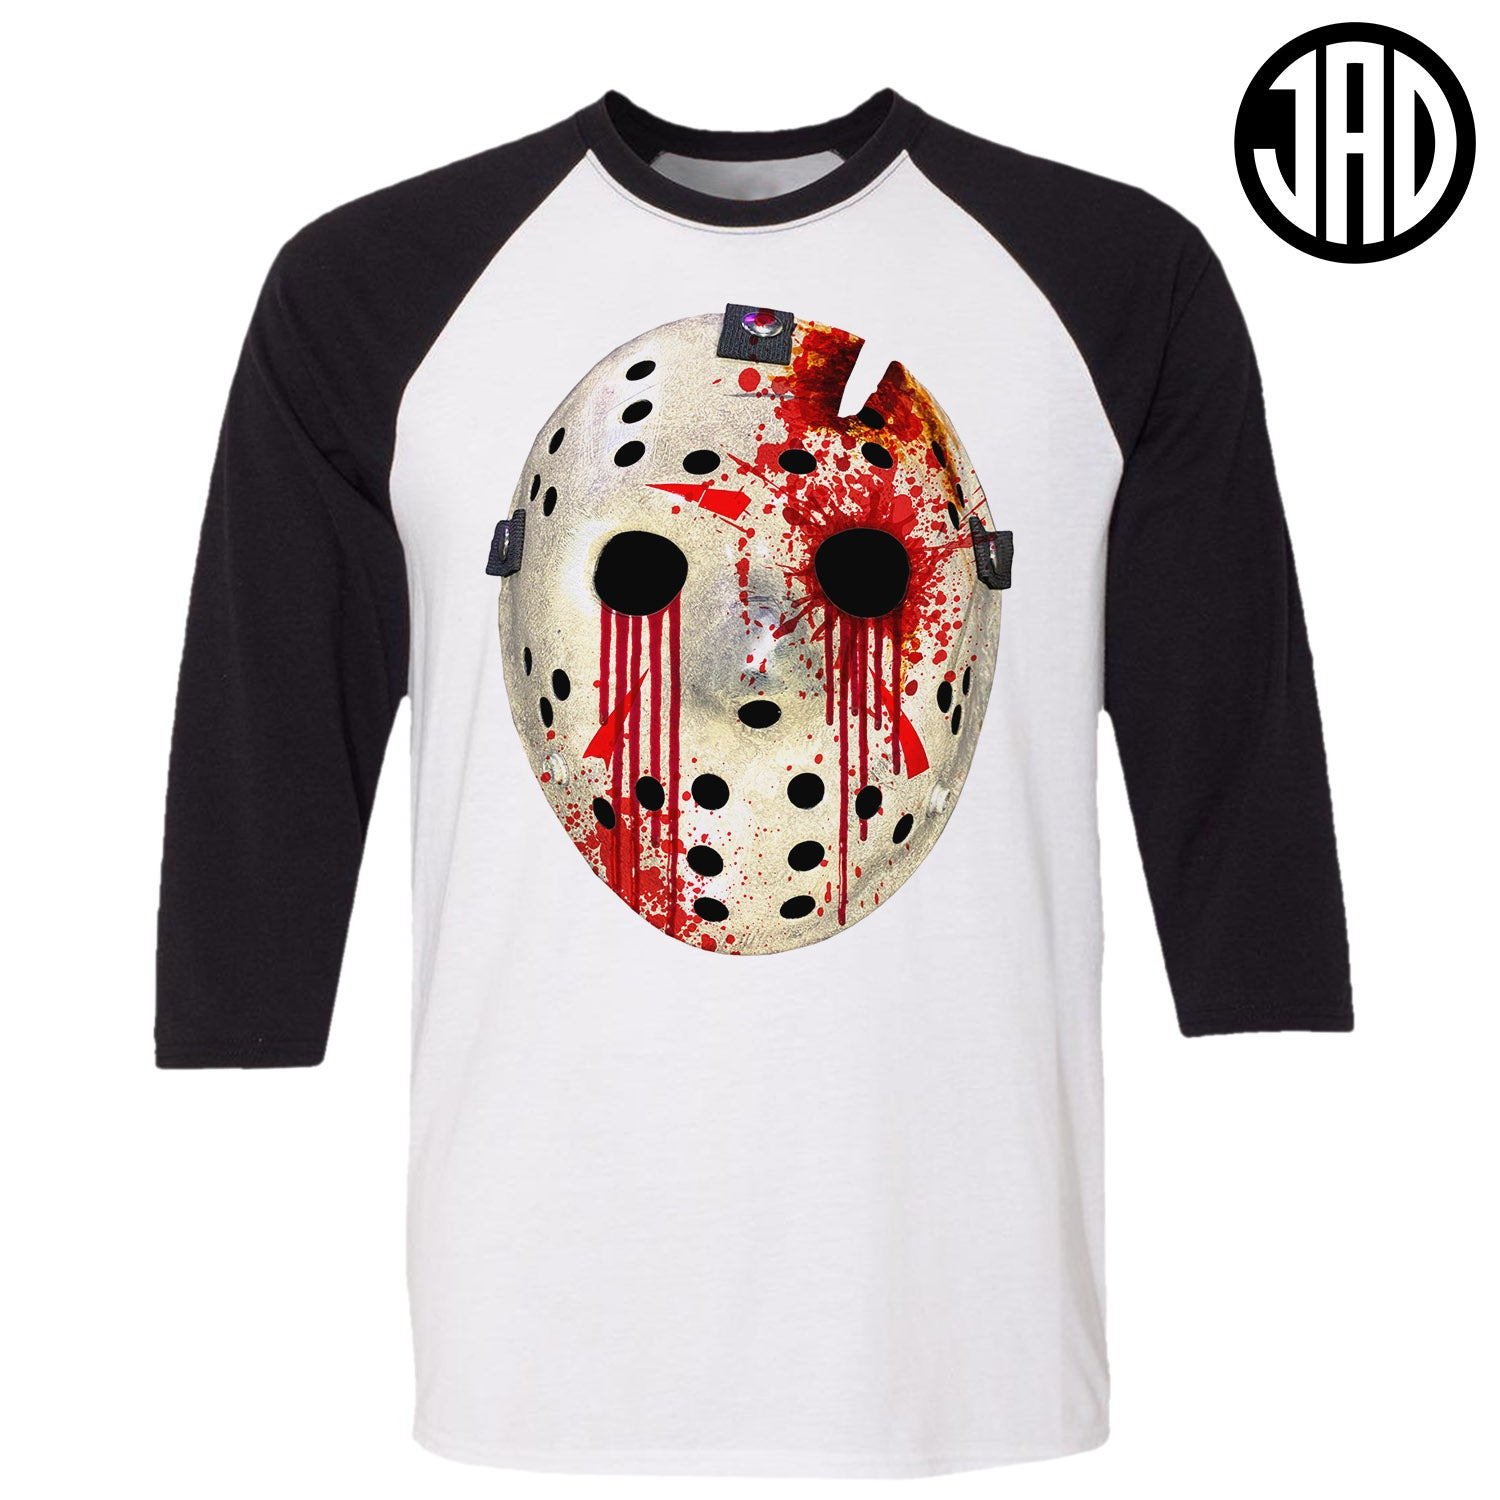 Blood Tears - Men's (Unisex) Baseball Tee